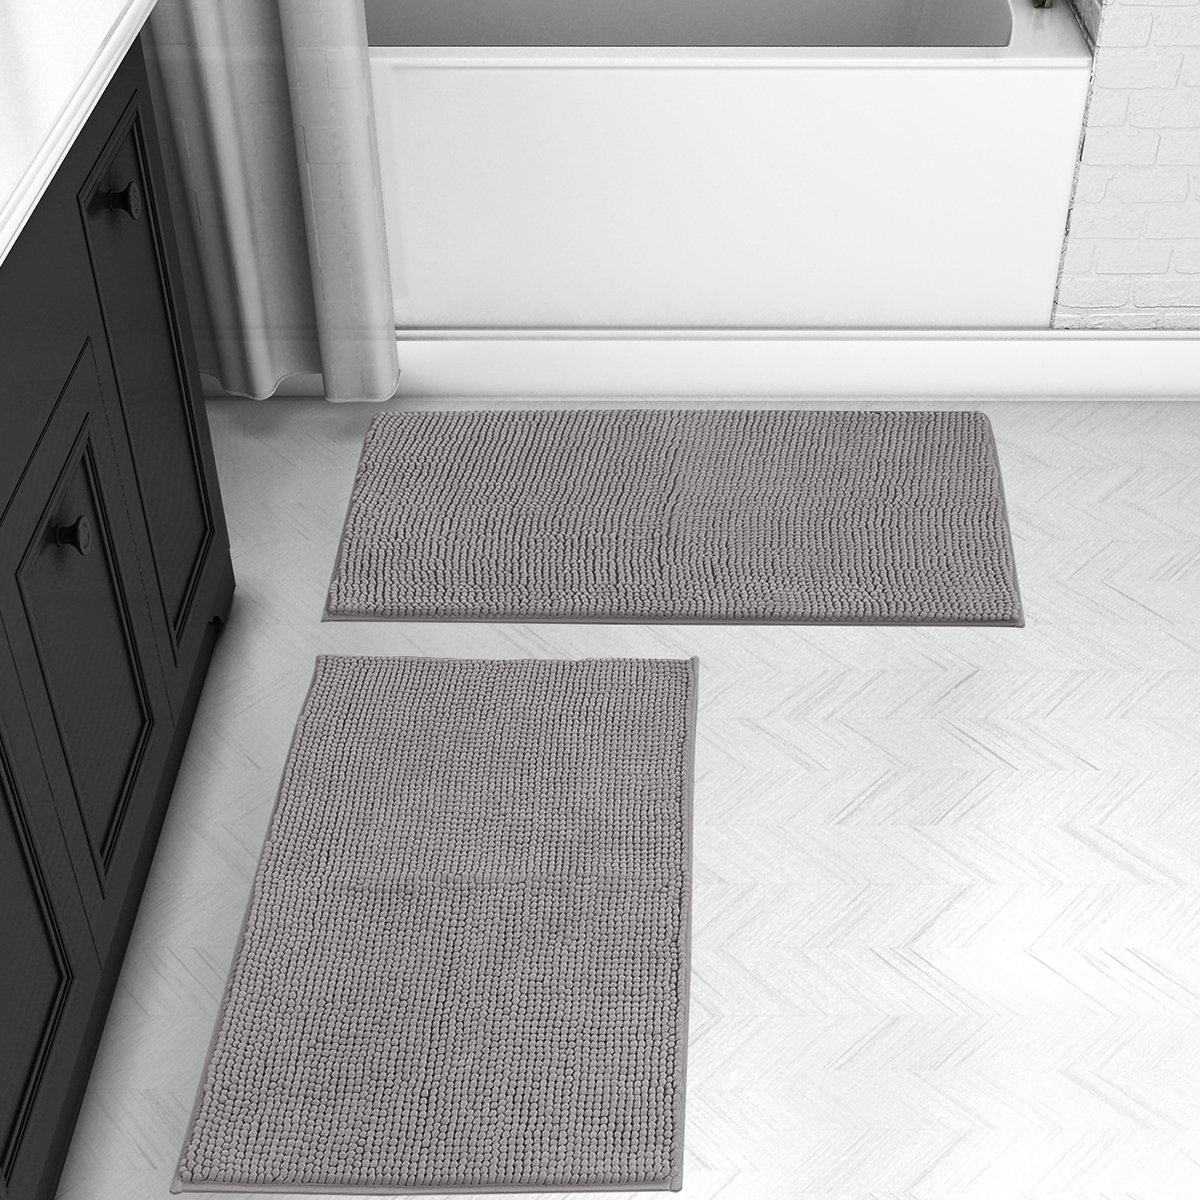 The Best Bathroom Rugs And Non-Slip Mats: Reviews & Buying Guide 12